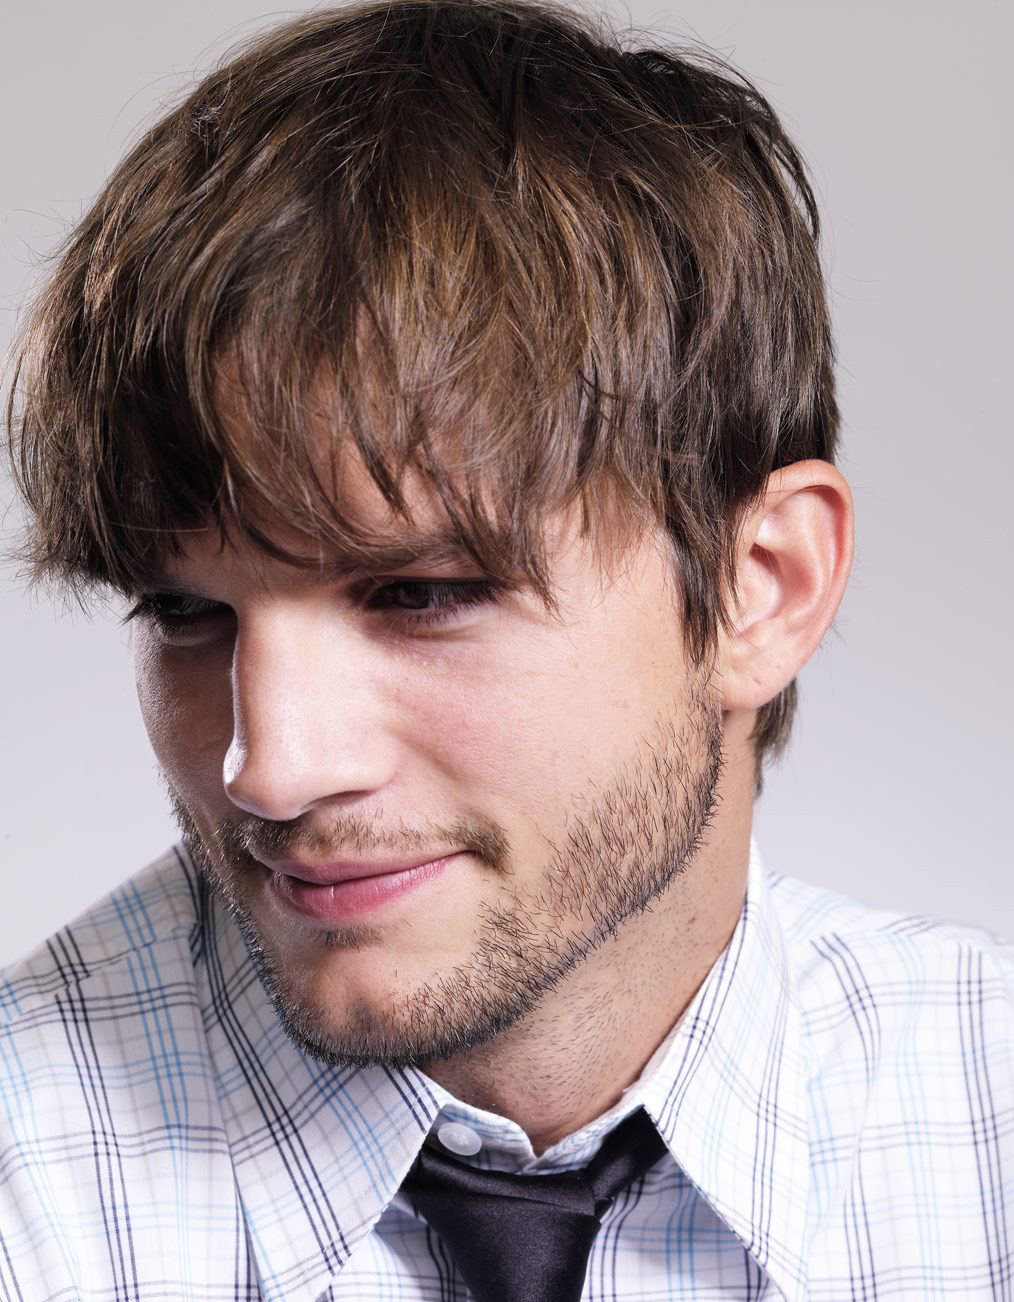 Ashton kutcher nose job plastic surgery before and after for The ashton